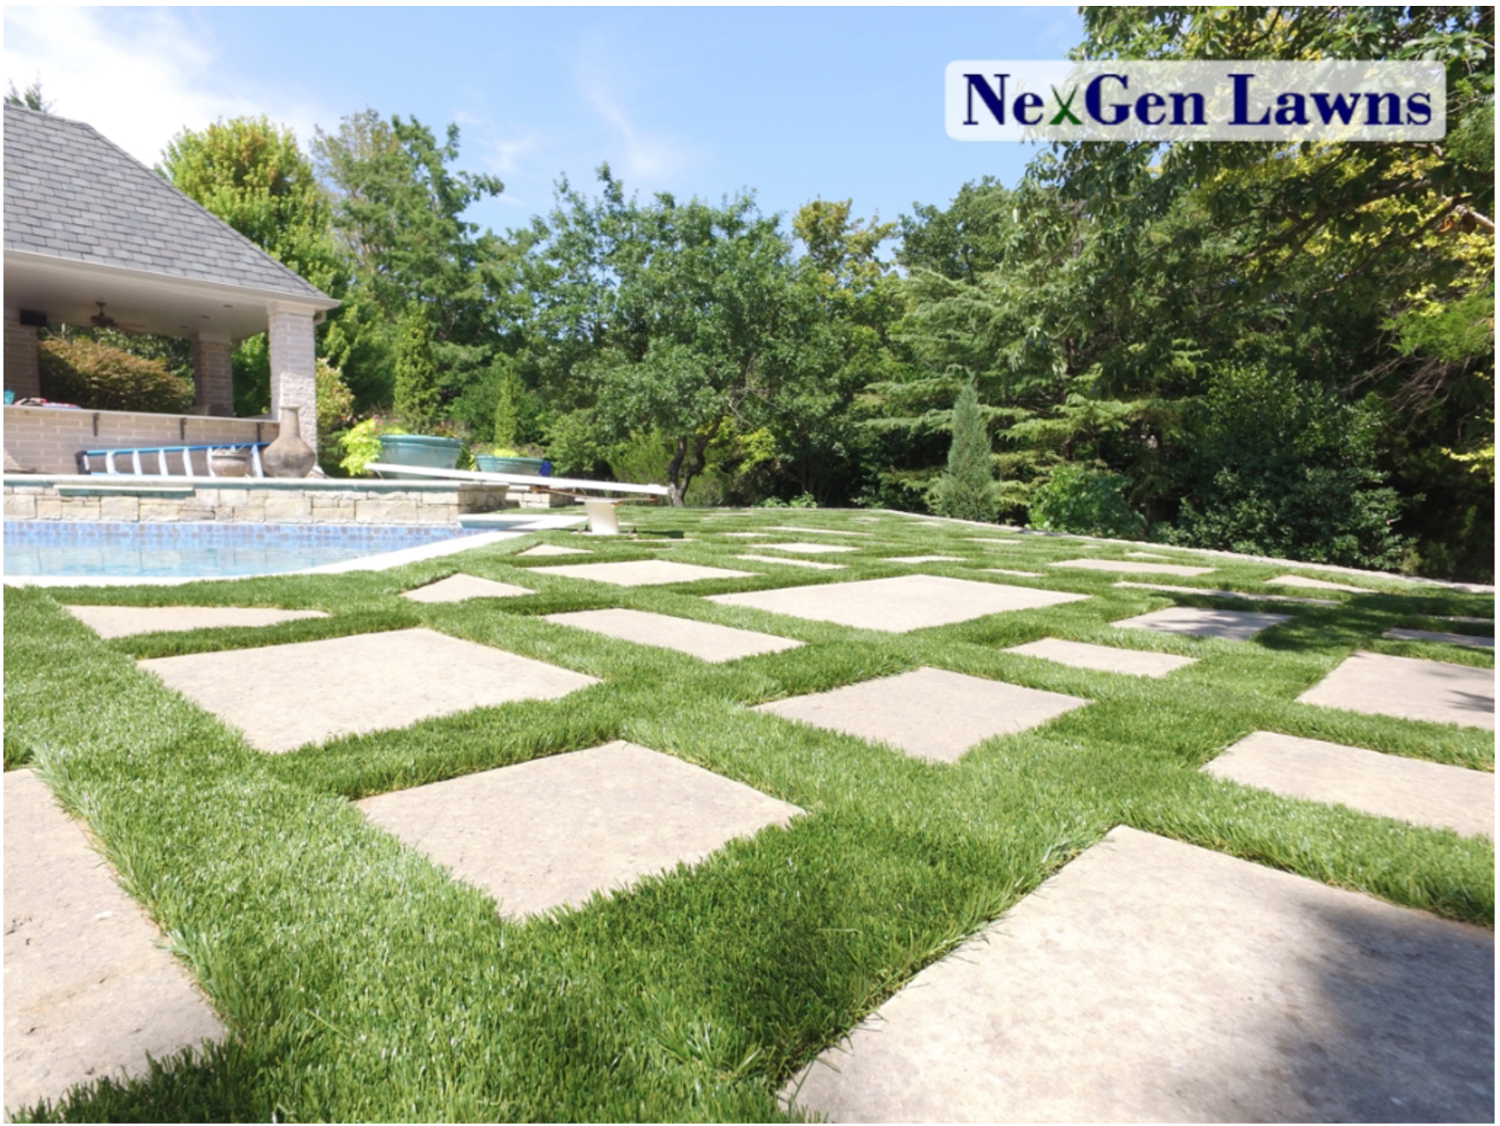 synthetic turf products create